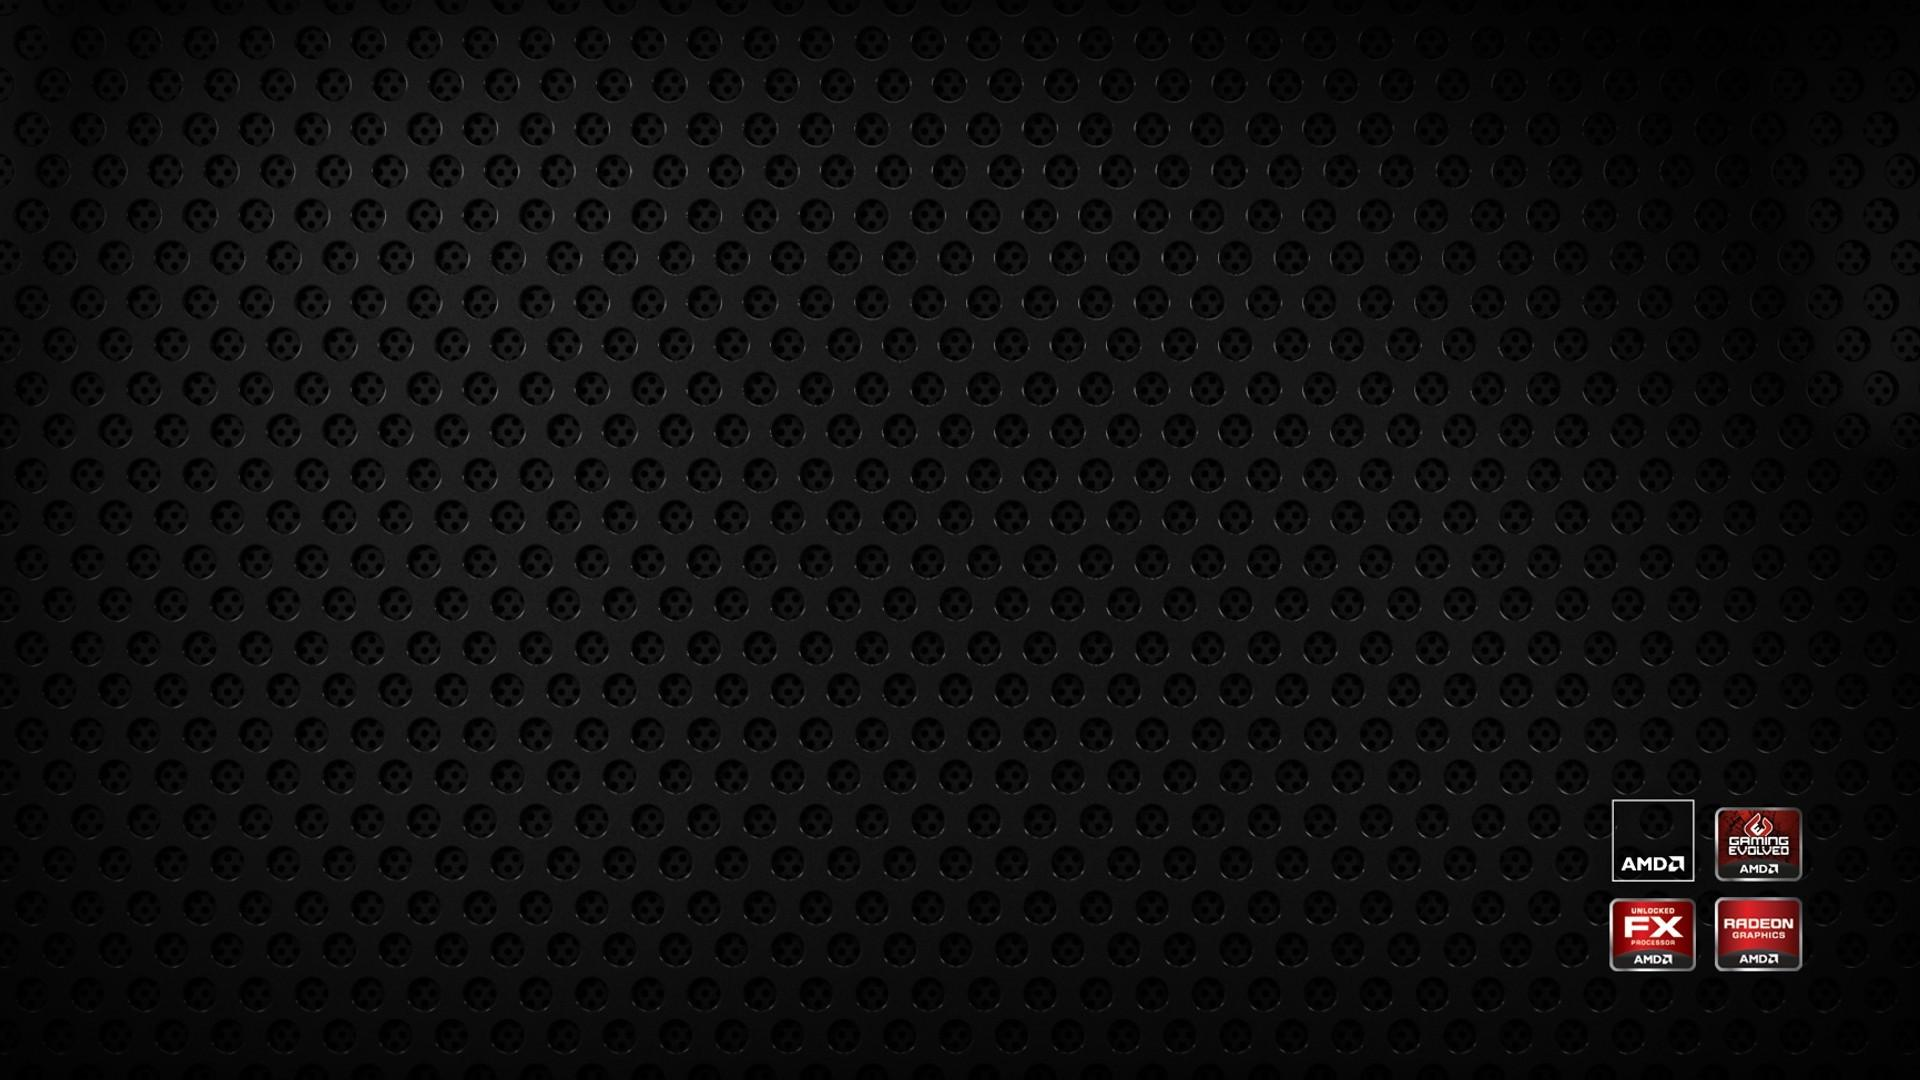 amd fx background by - photo #28